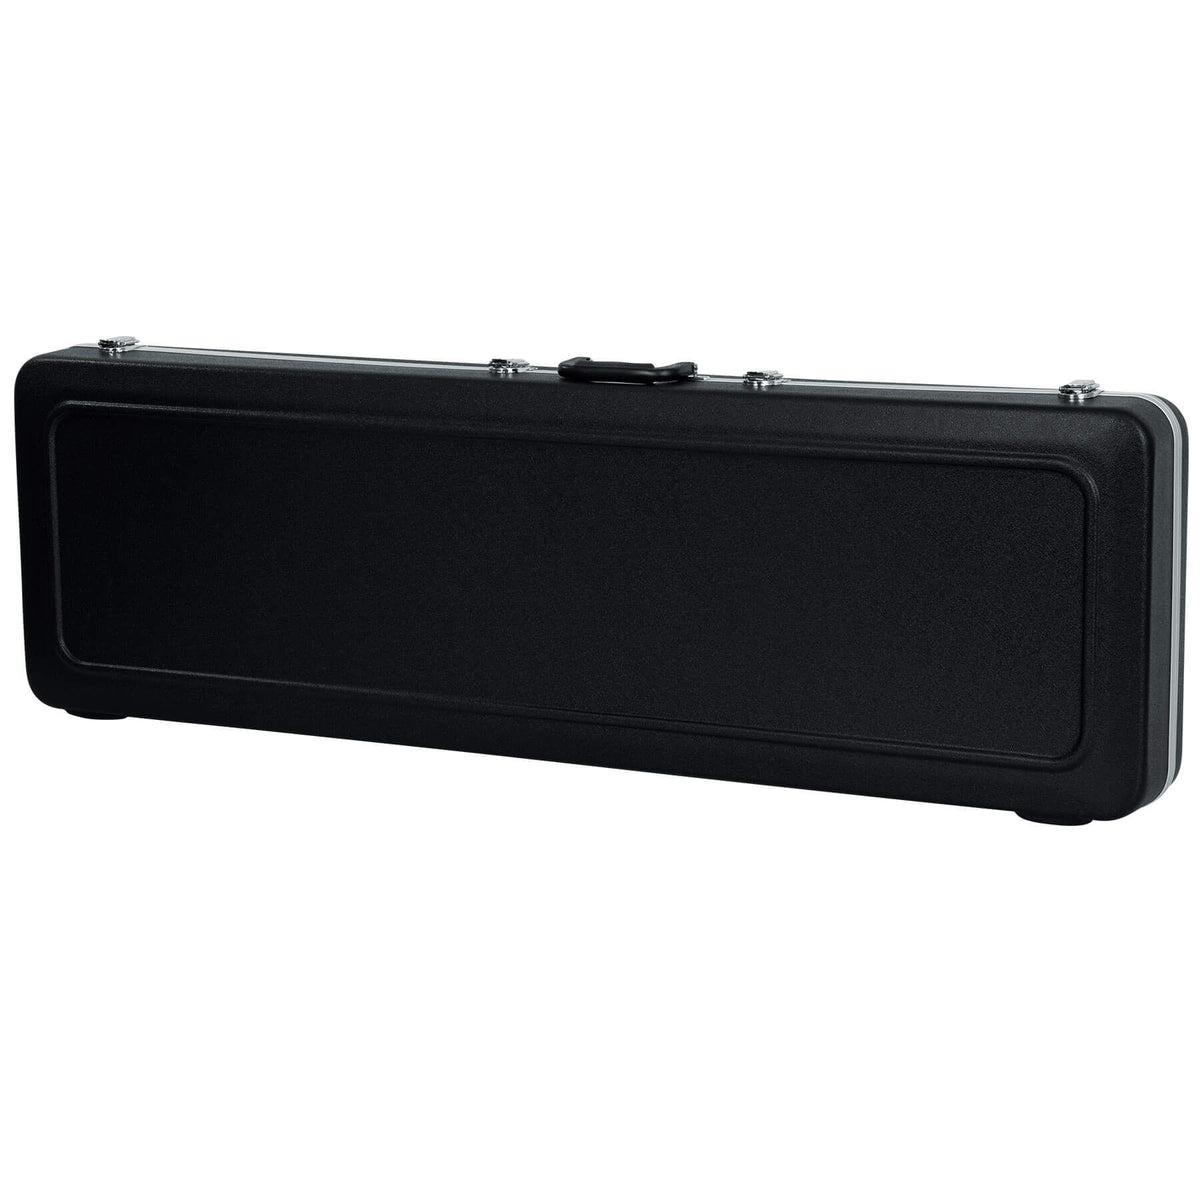 Gator Bass Guitar Case fits Ibanez SR500, SR500 Soundgear